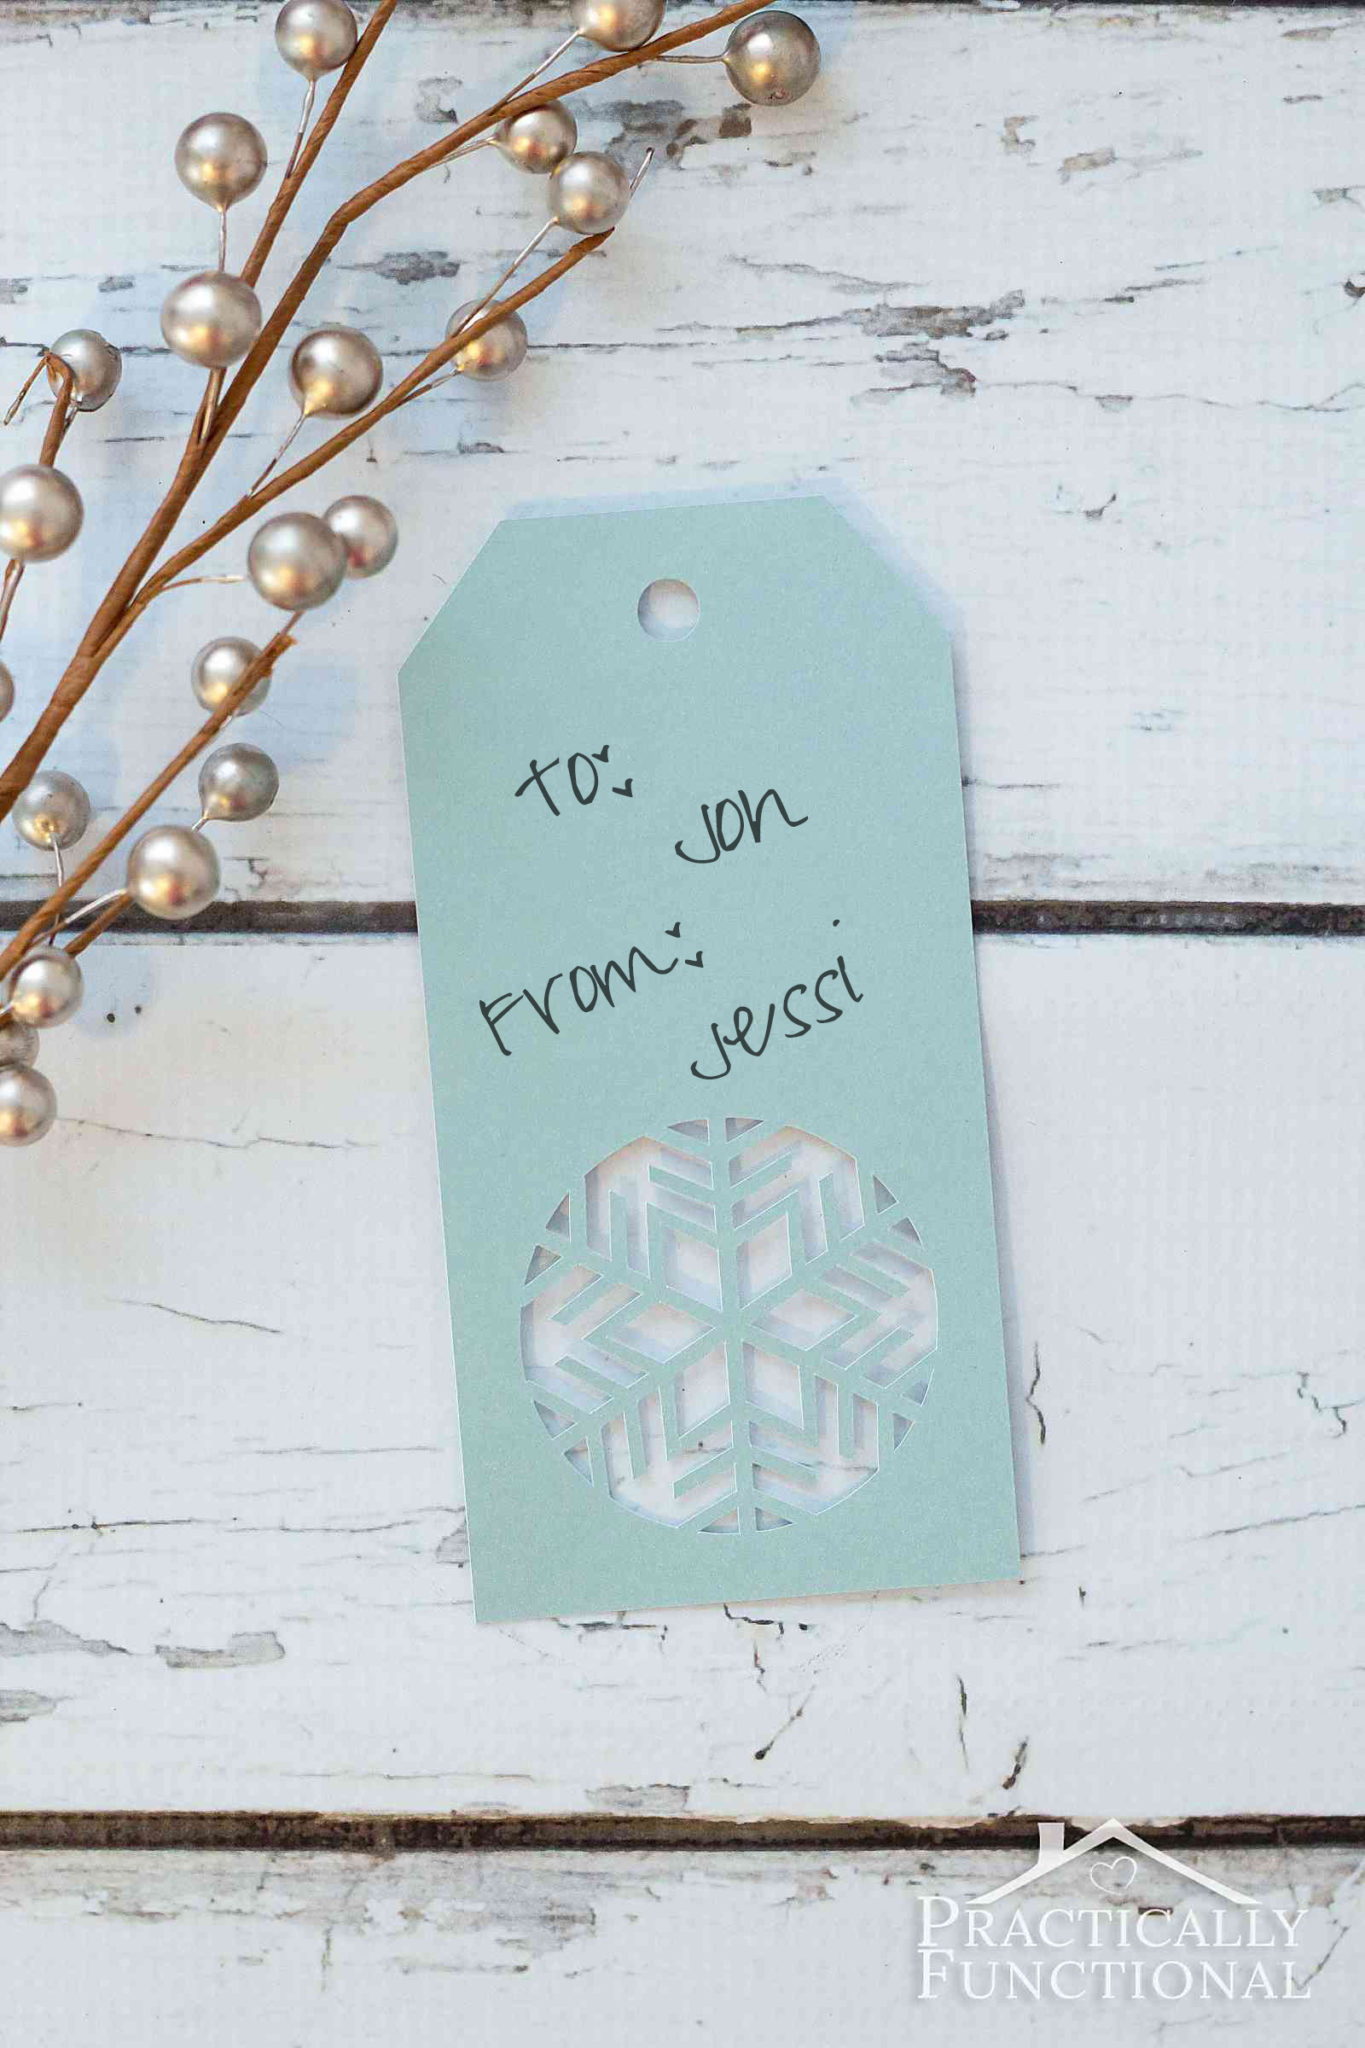 Love these handmade snowflake Christmas gift tags! Get the free cuttable file or free printable PDF template from practicallyfunctional.com here!